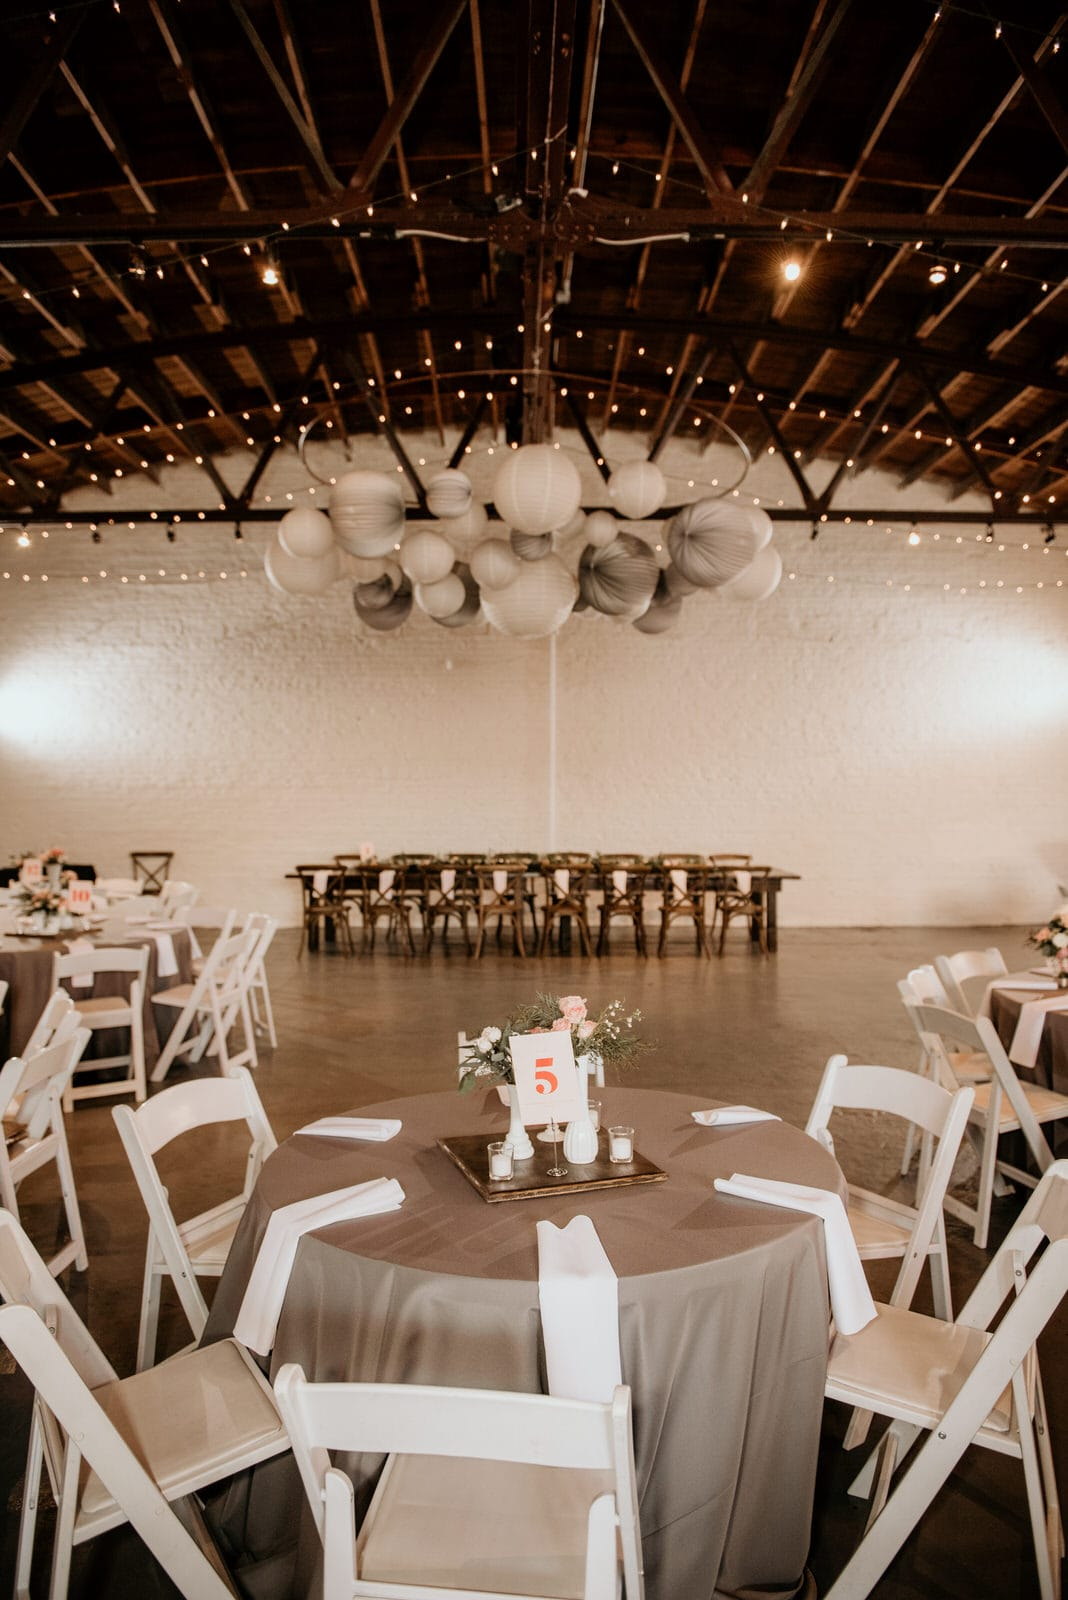 Wedding Reception with Chairs, Lights